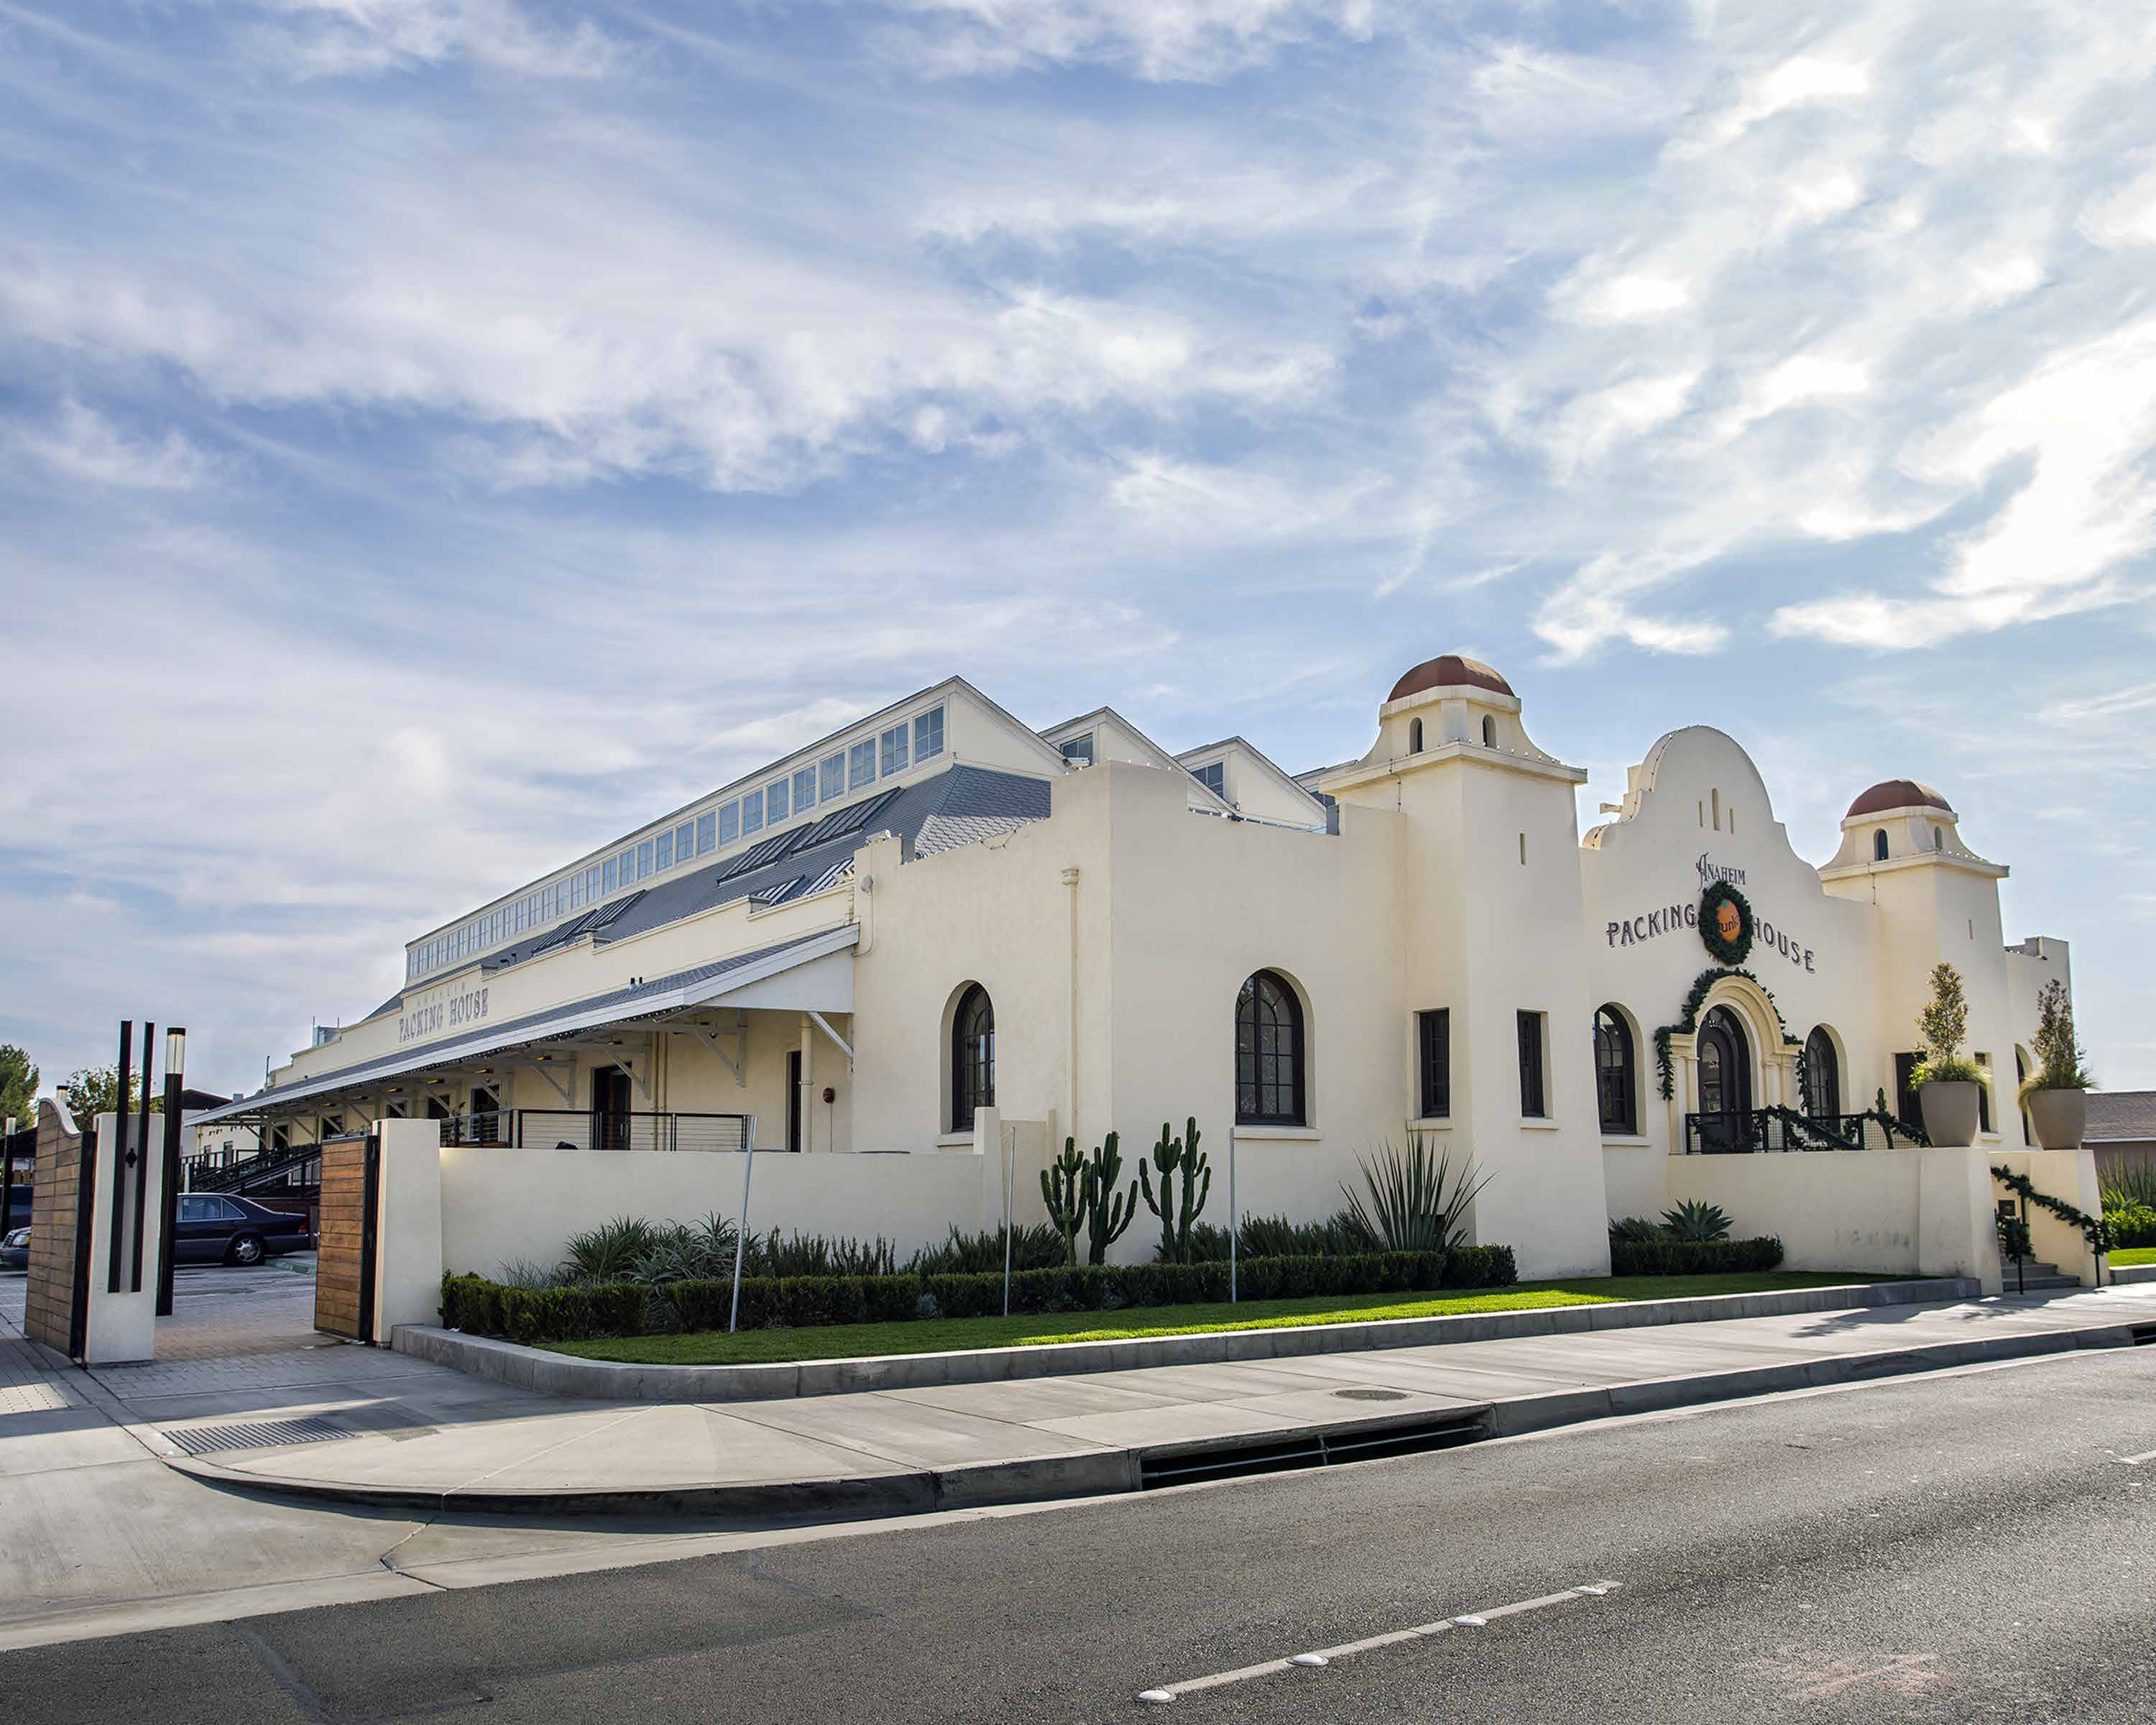 Anaheim Packing House Historical Renovation